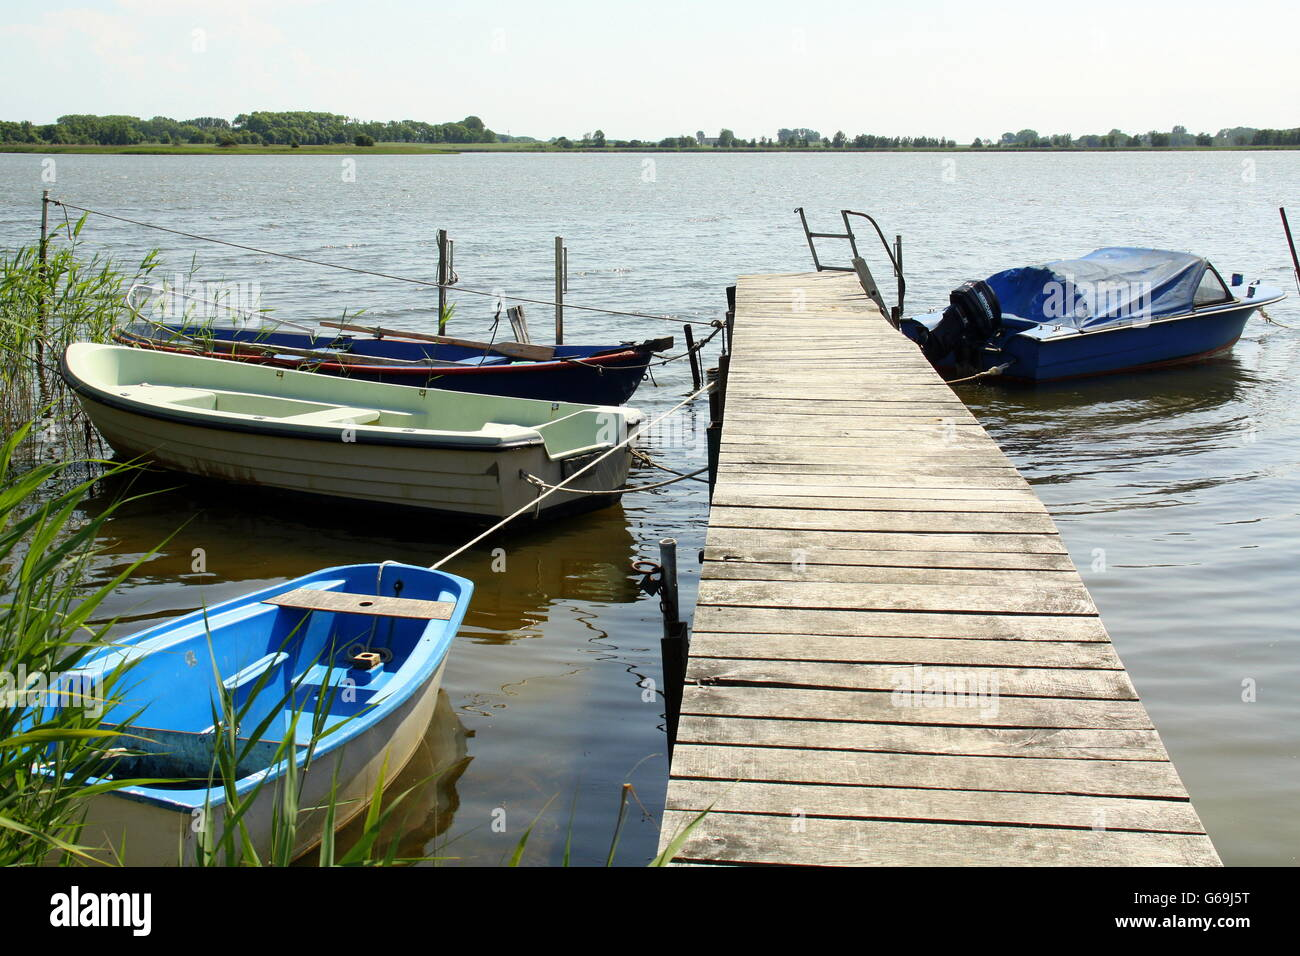 Boats in the bay of Nature reserve Neuendorfer Wiek on the island Rugen. Germany - Stock Image